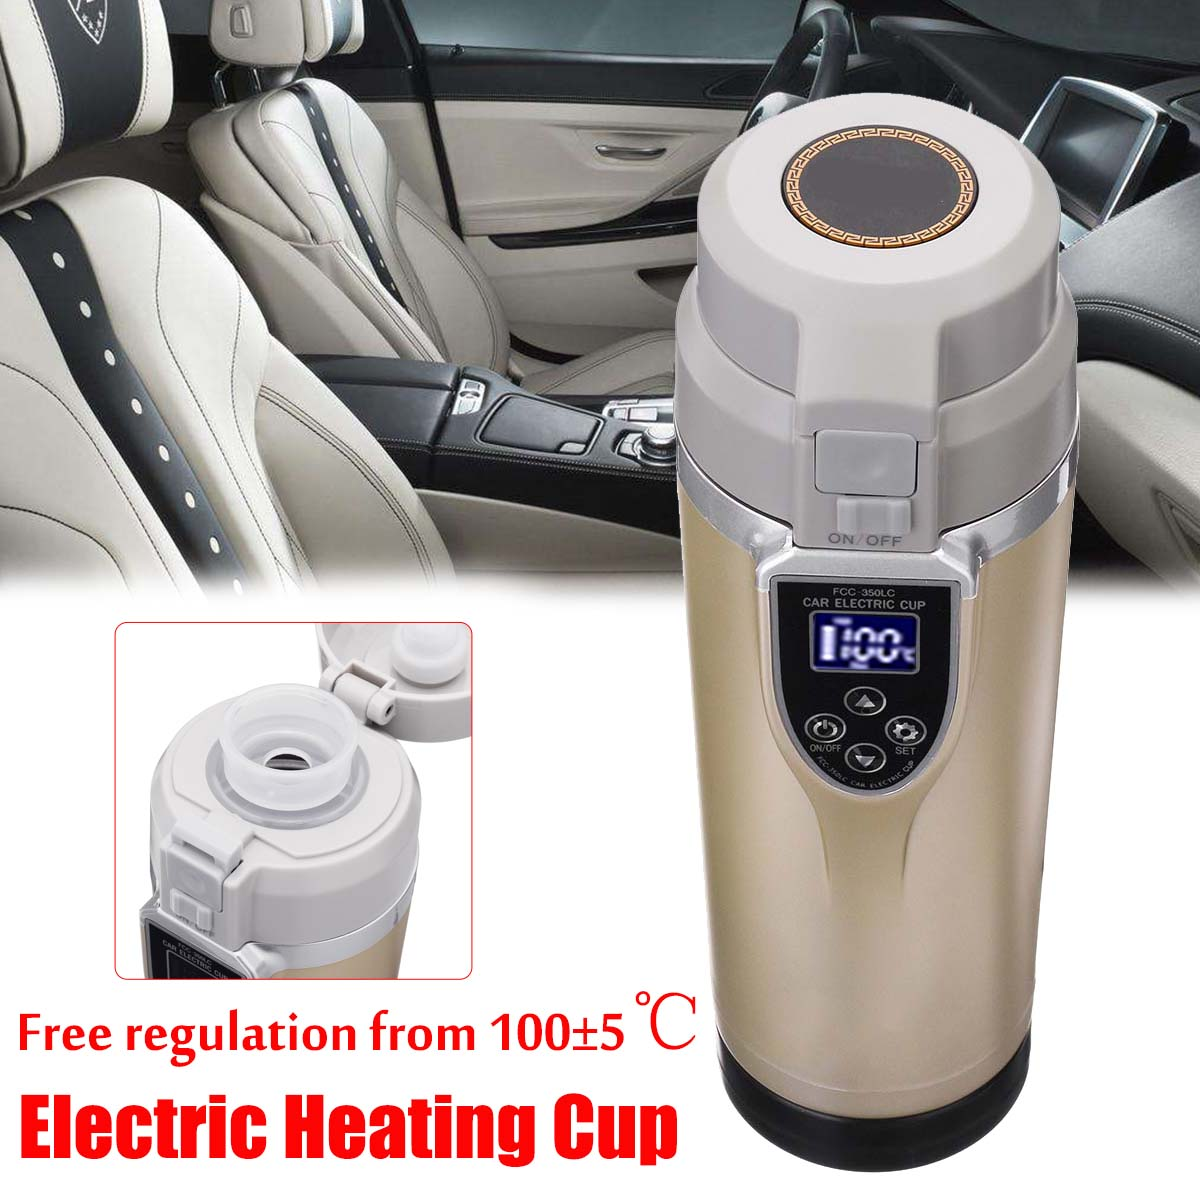 12V/24V 350ml Intelligent Vehicle Heating Cup Car Auto Electric Heating Cup Adjustable Temperature Electric Kettle Boiling Mug